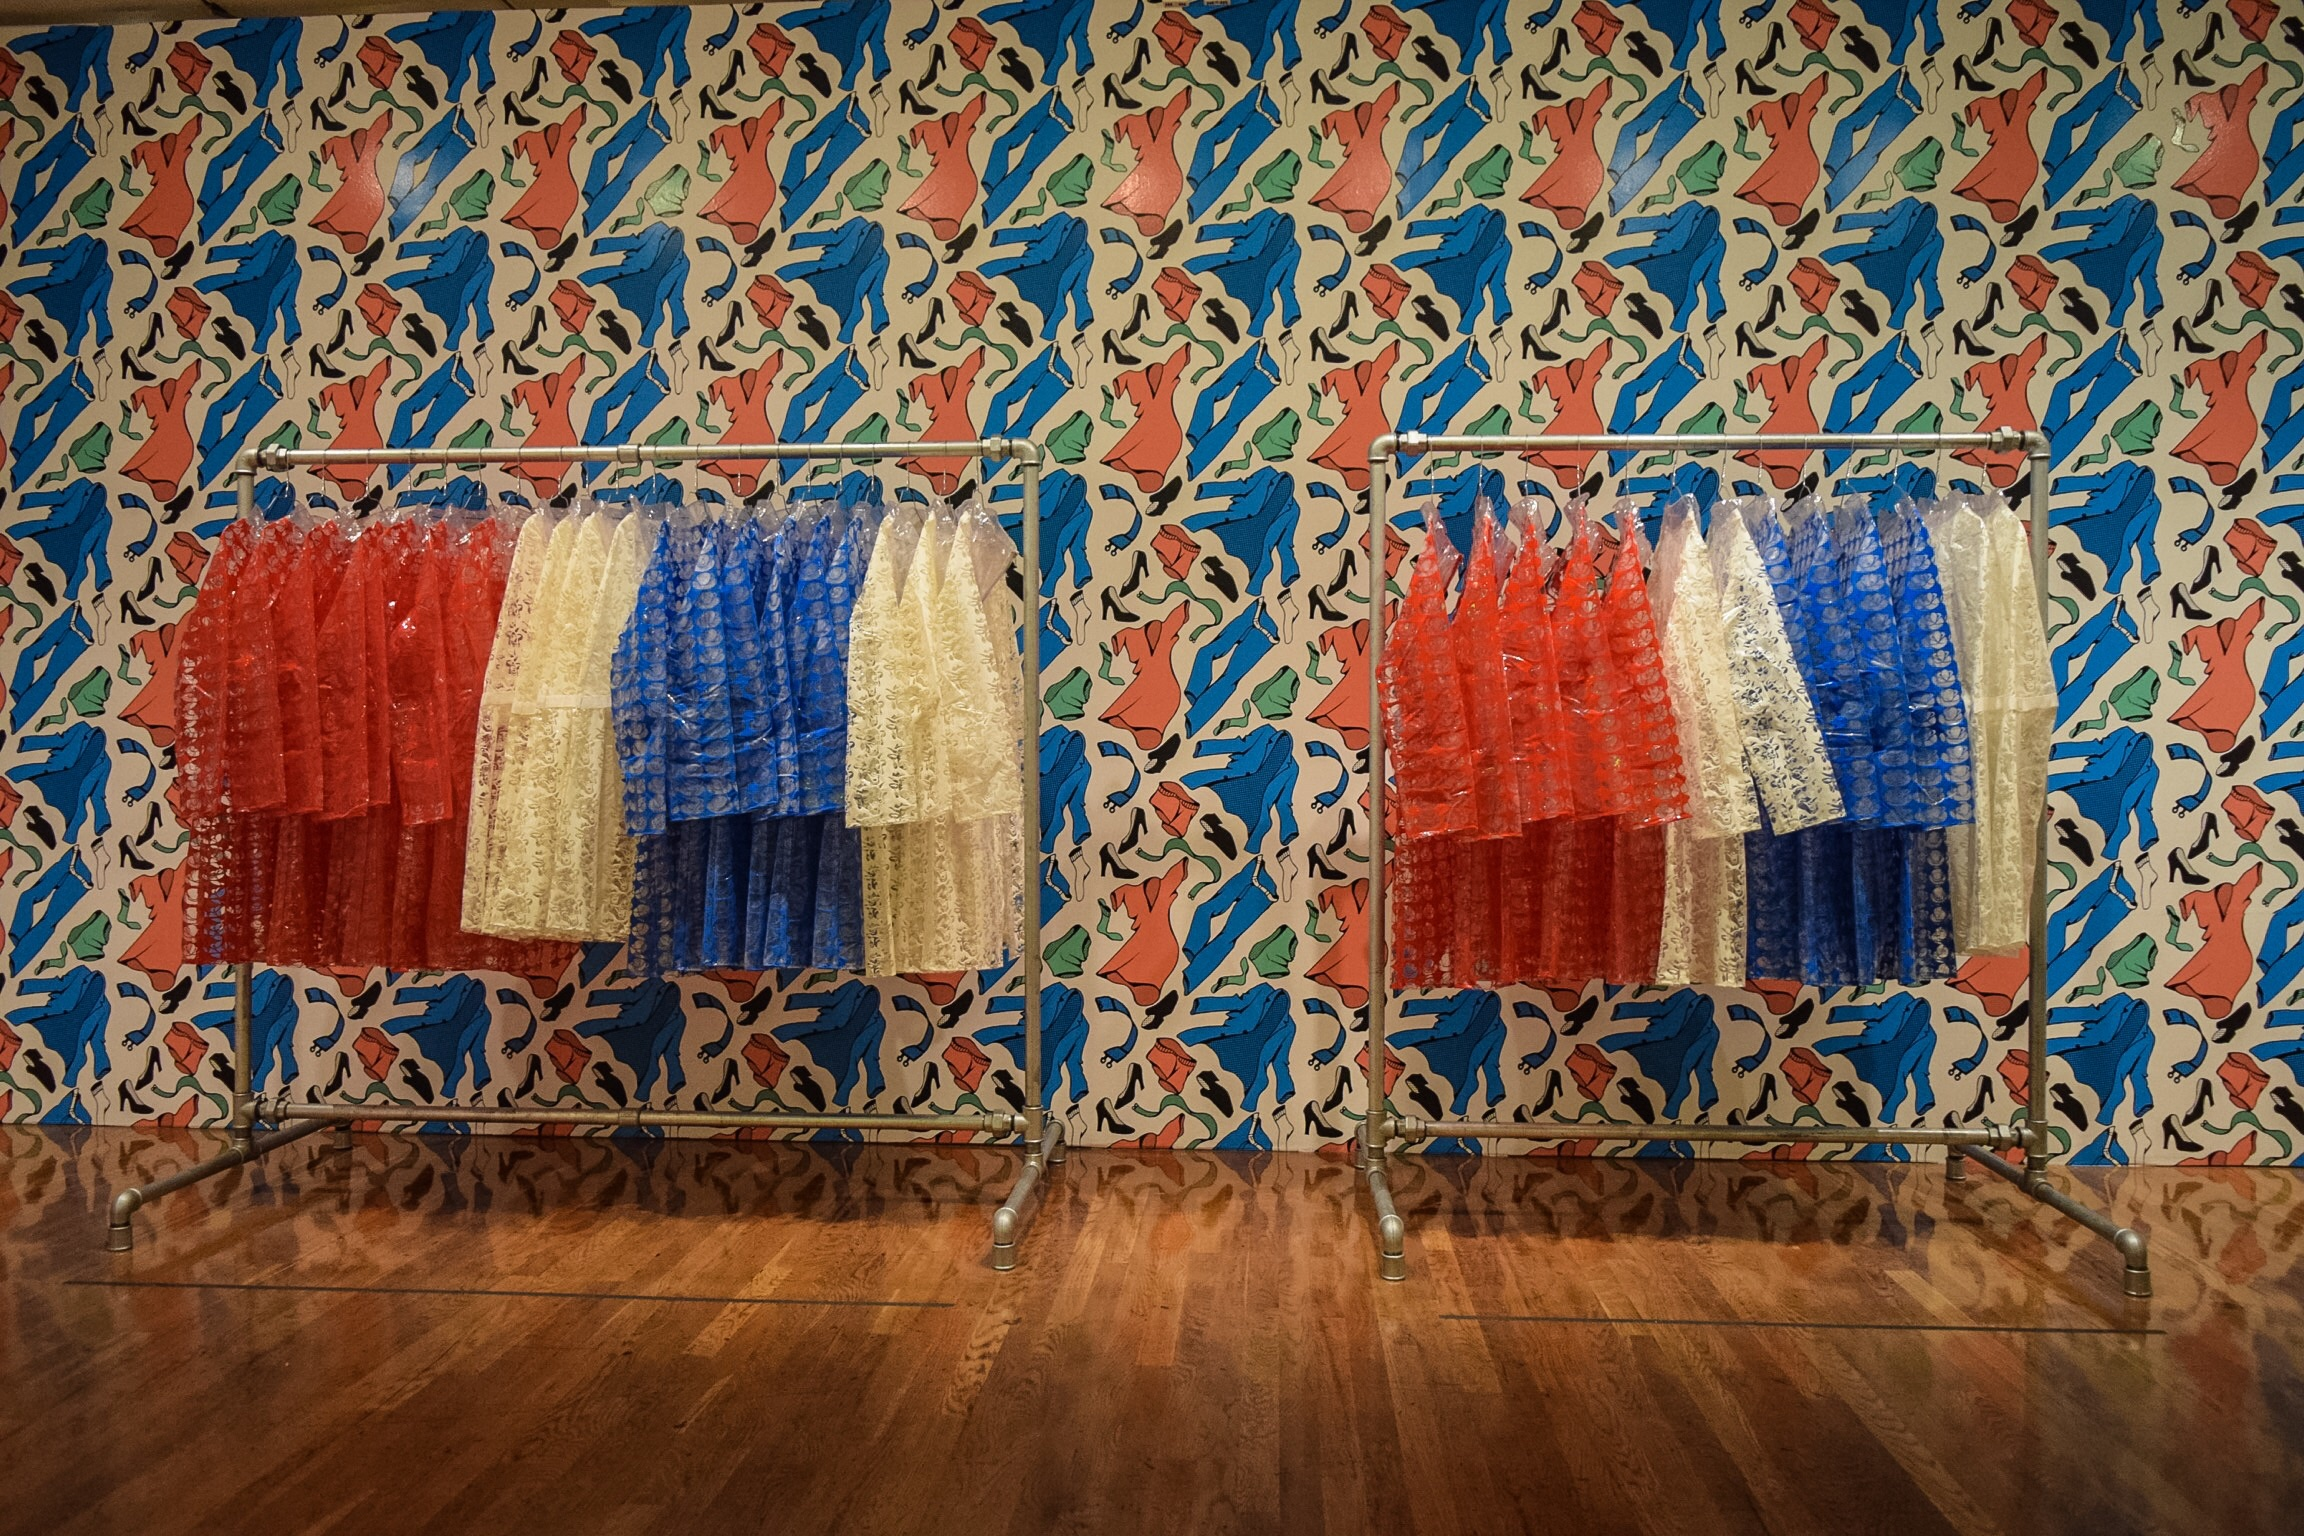 Clothes Rack 2 and Clothes Rack 3, Thomas Baarle, 1968